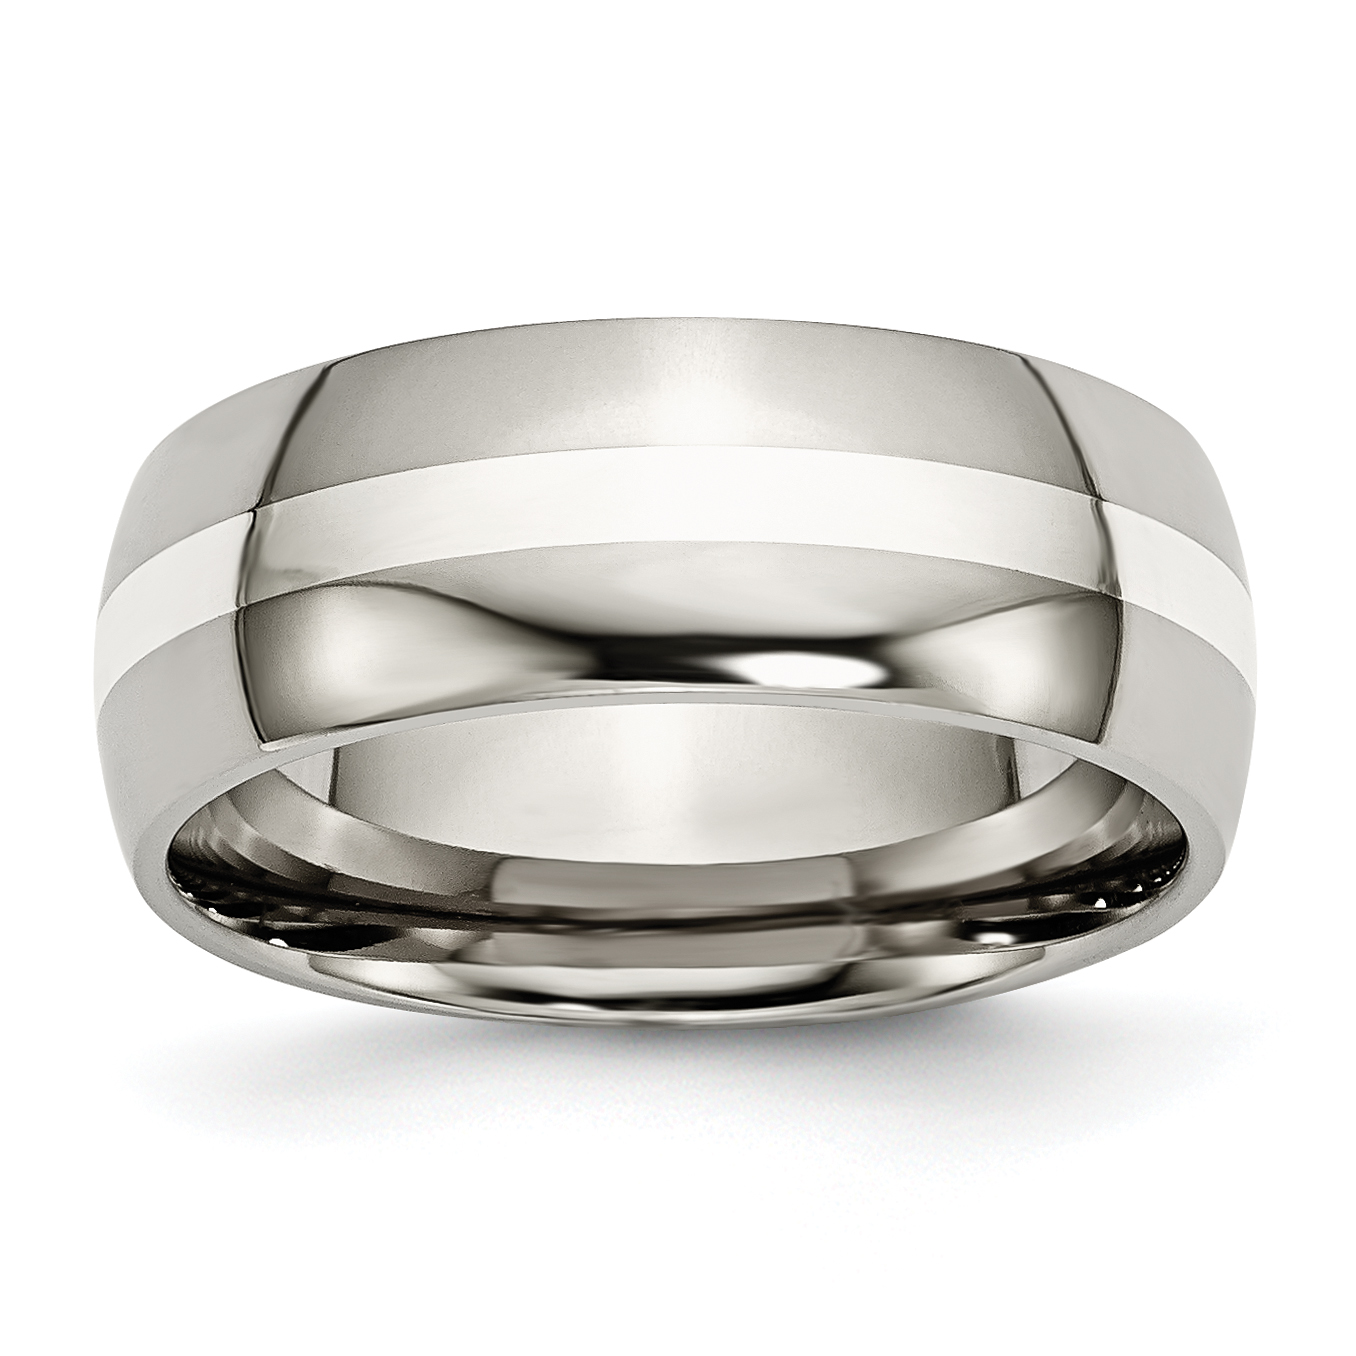 Titanium 925 Sterling Silver Inlay 8mm Wedding Ring Band Size 13 00